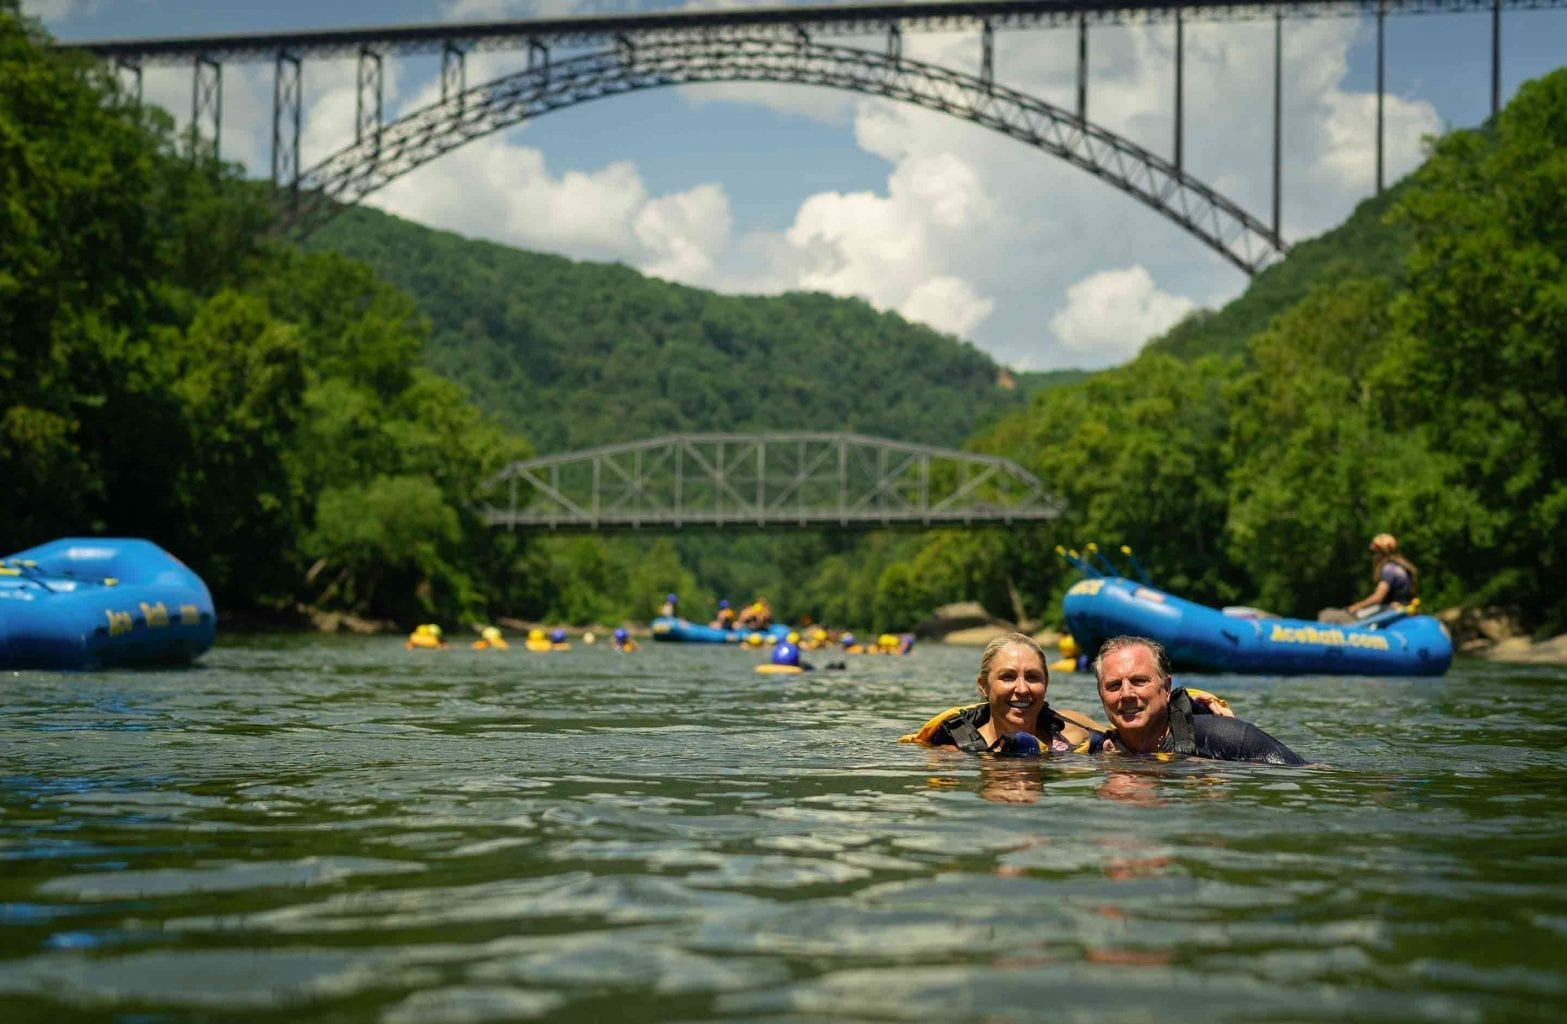 New River Gorge Fest